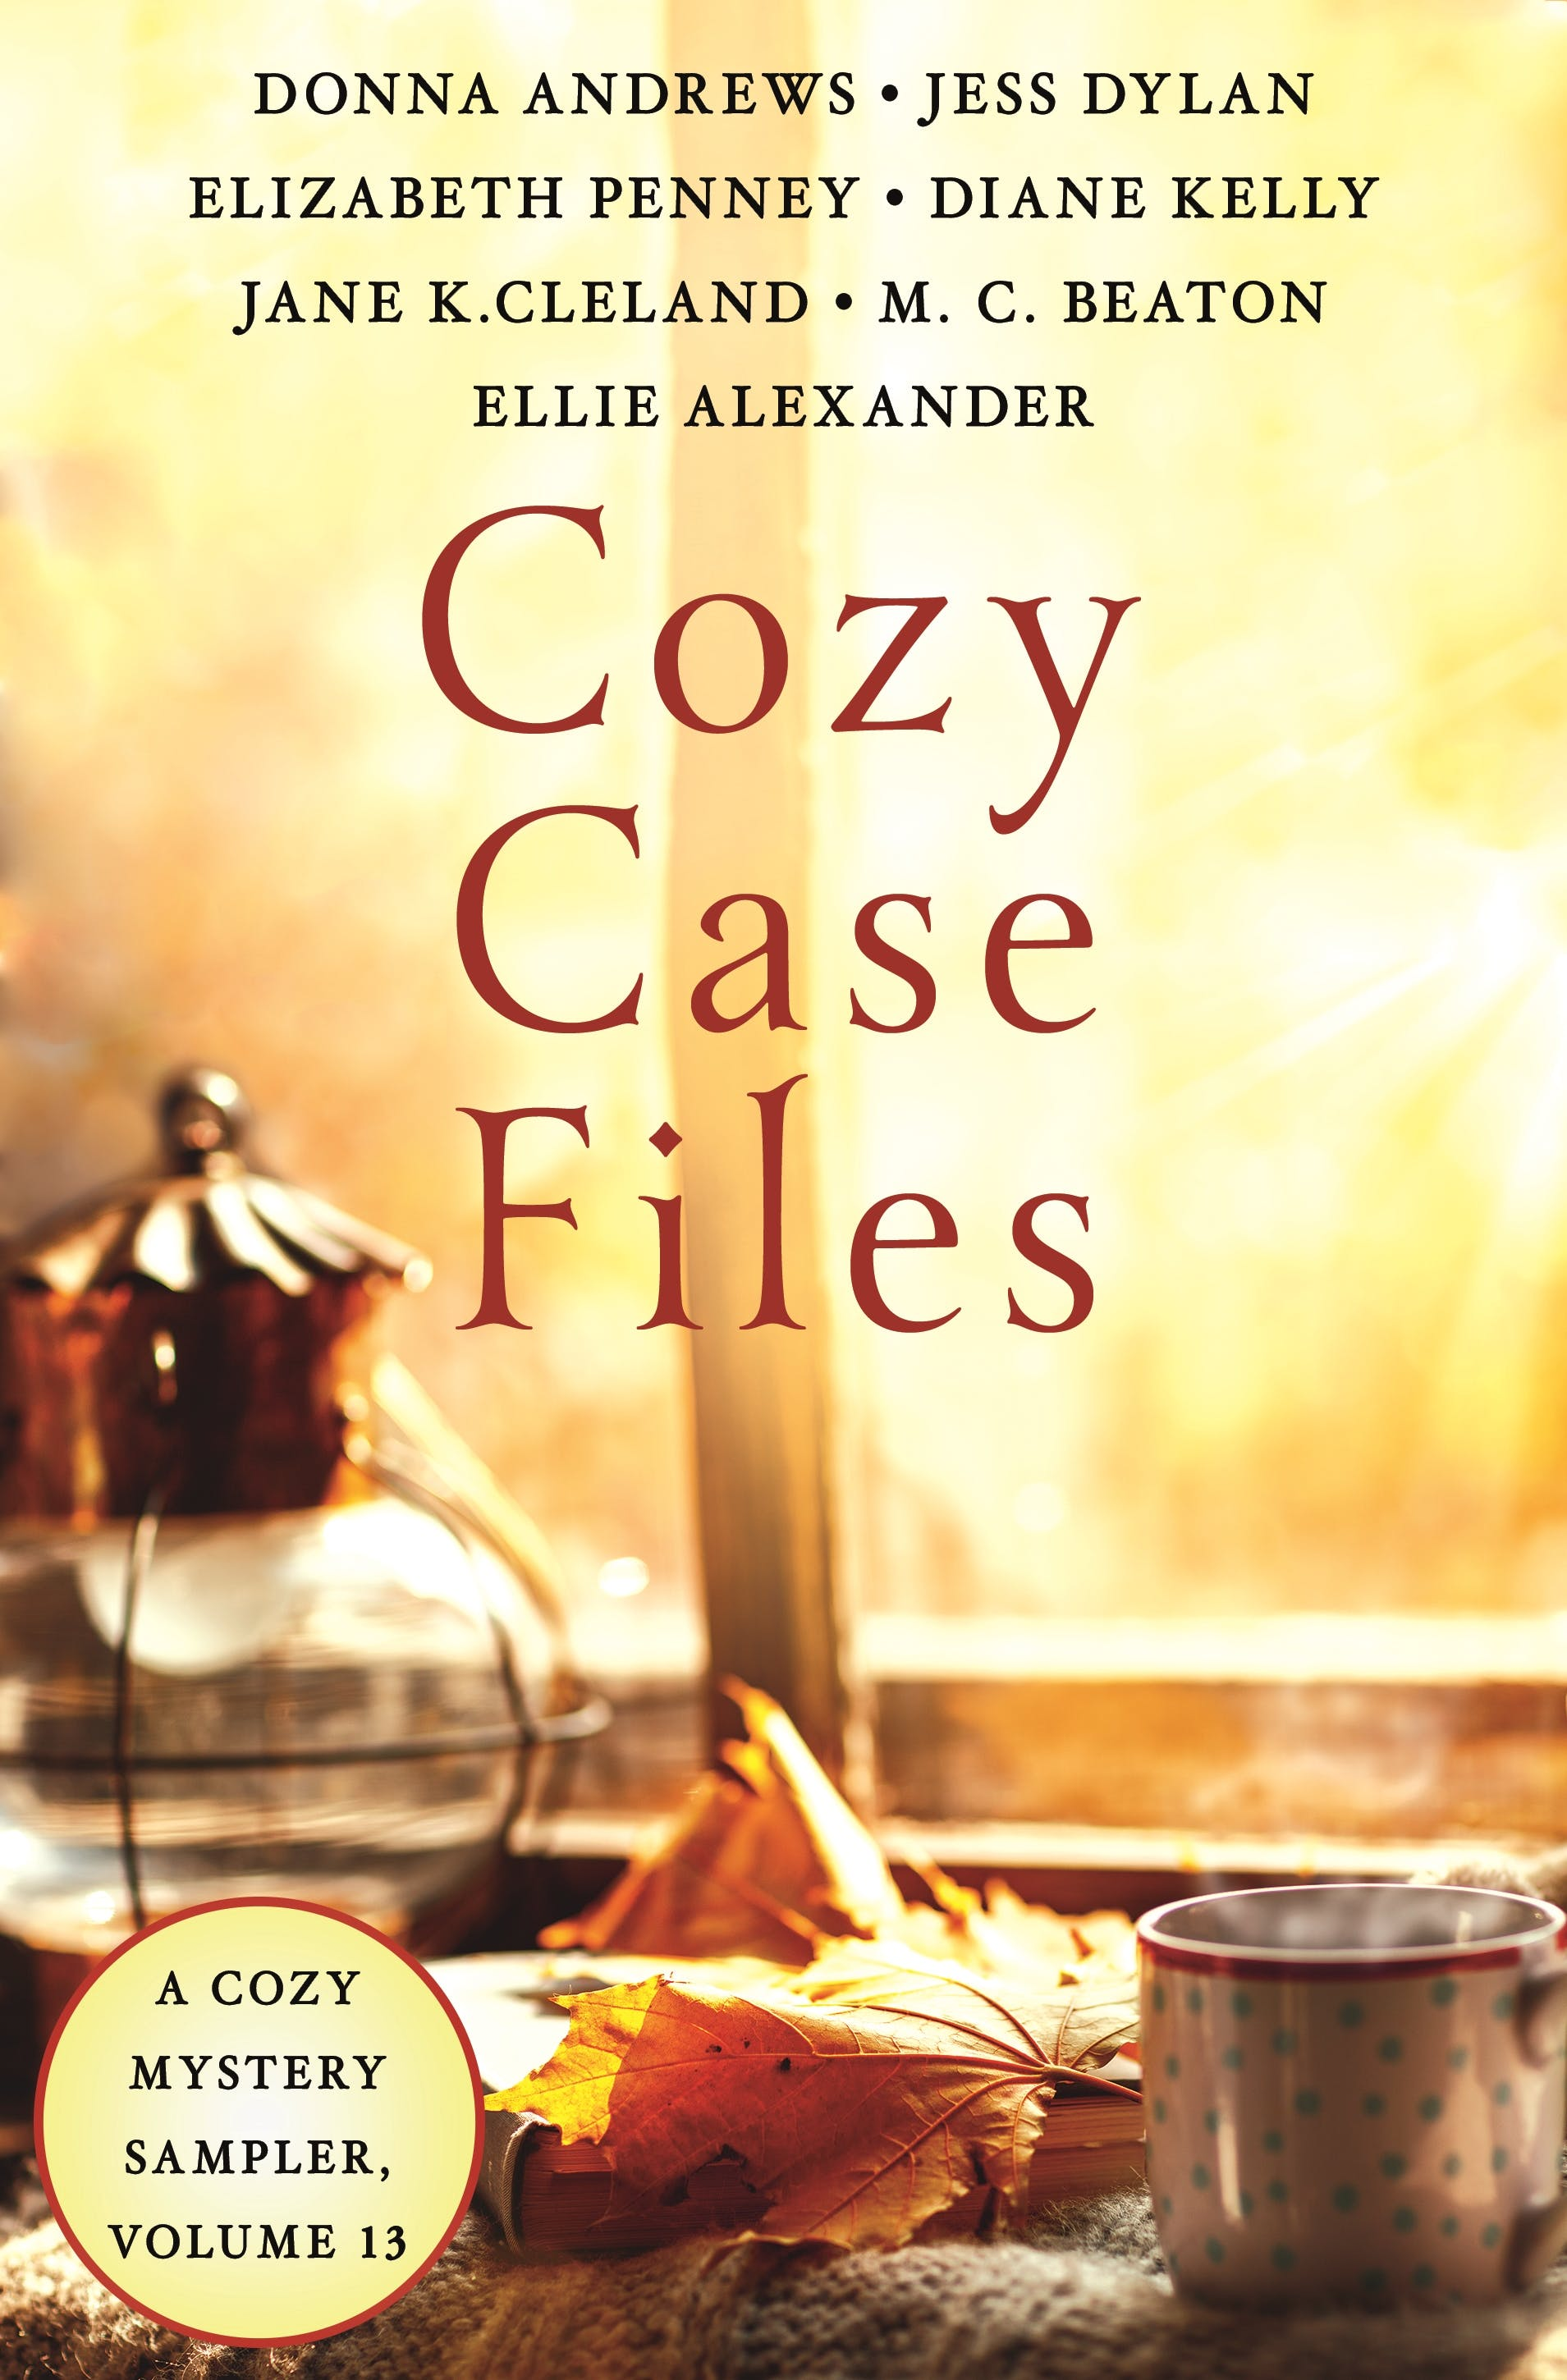 Image of Cozy Case Files, A Cozy Mystery Sampler, Volume 13